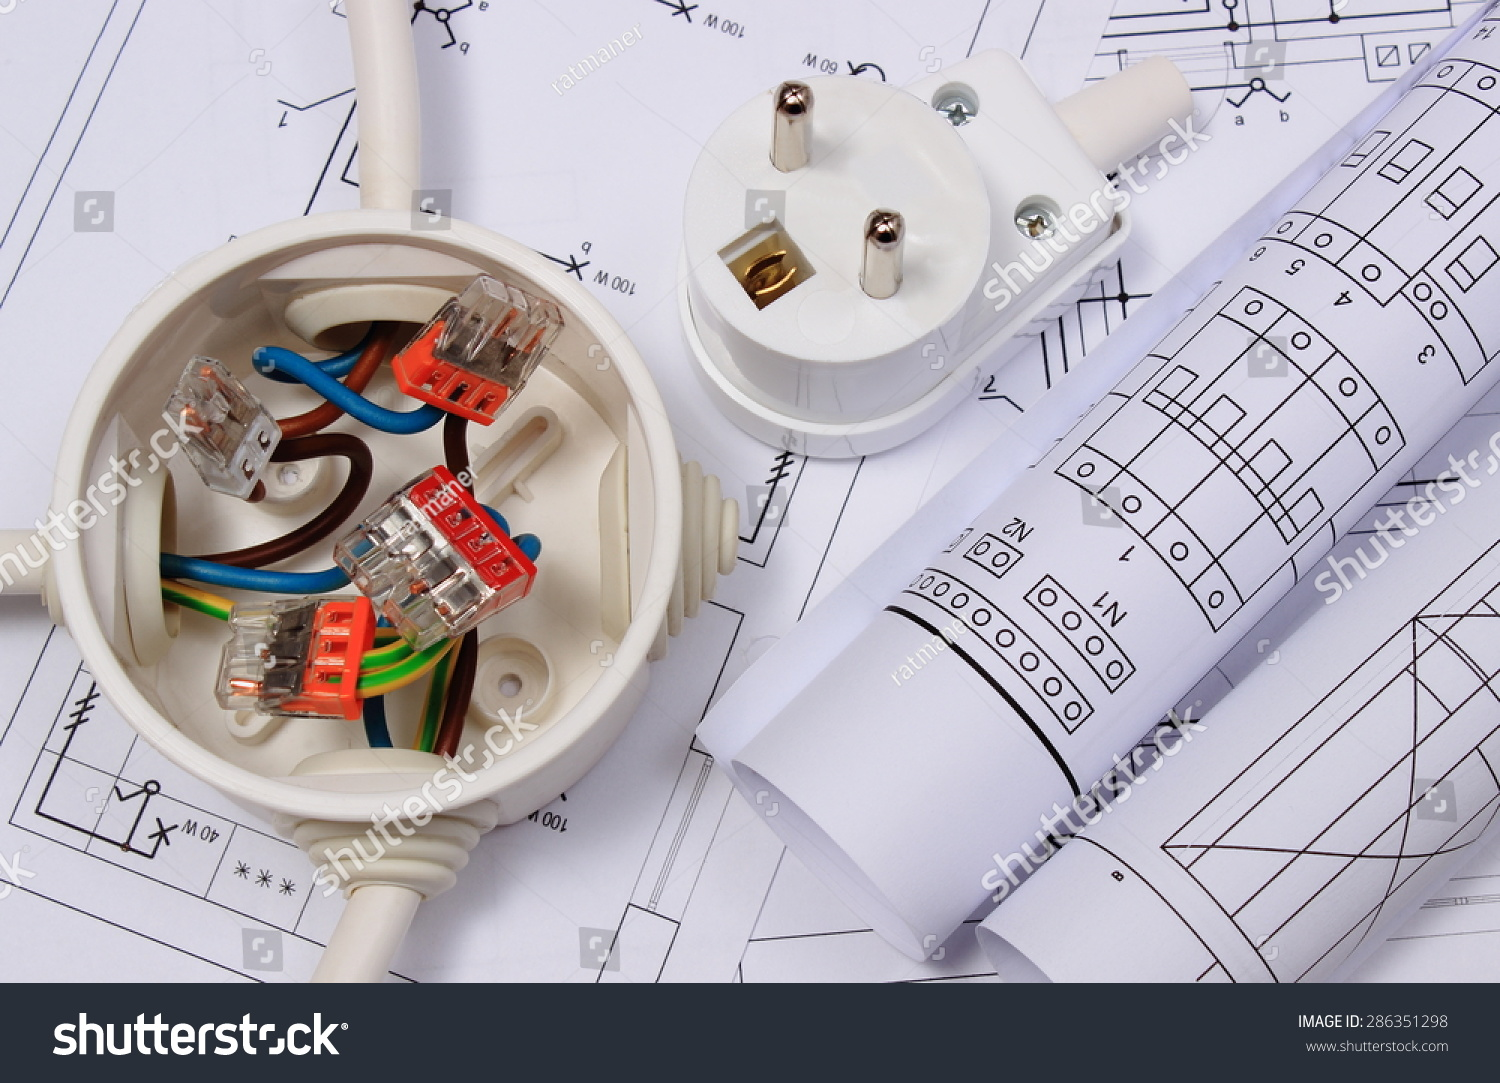 hight resolution of copper wire connections in electrical box rolls of electrical diagrams and electric plug on construction